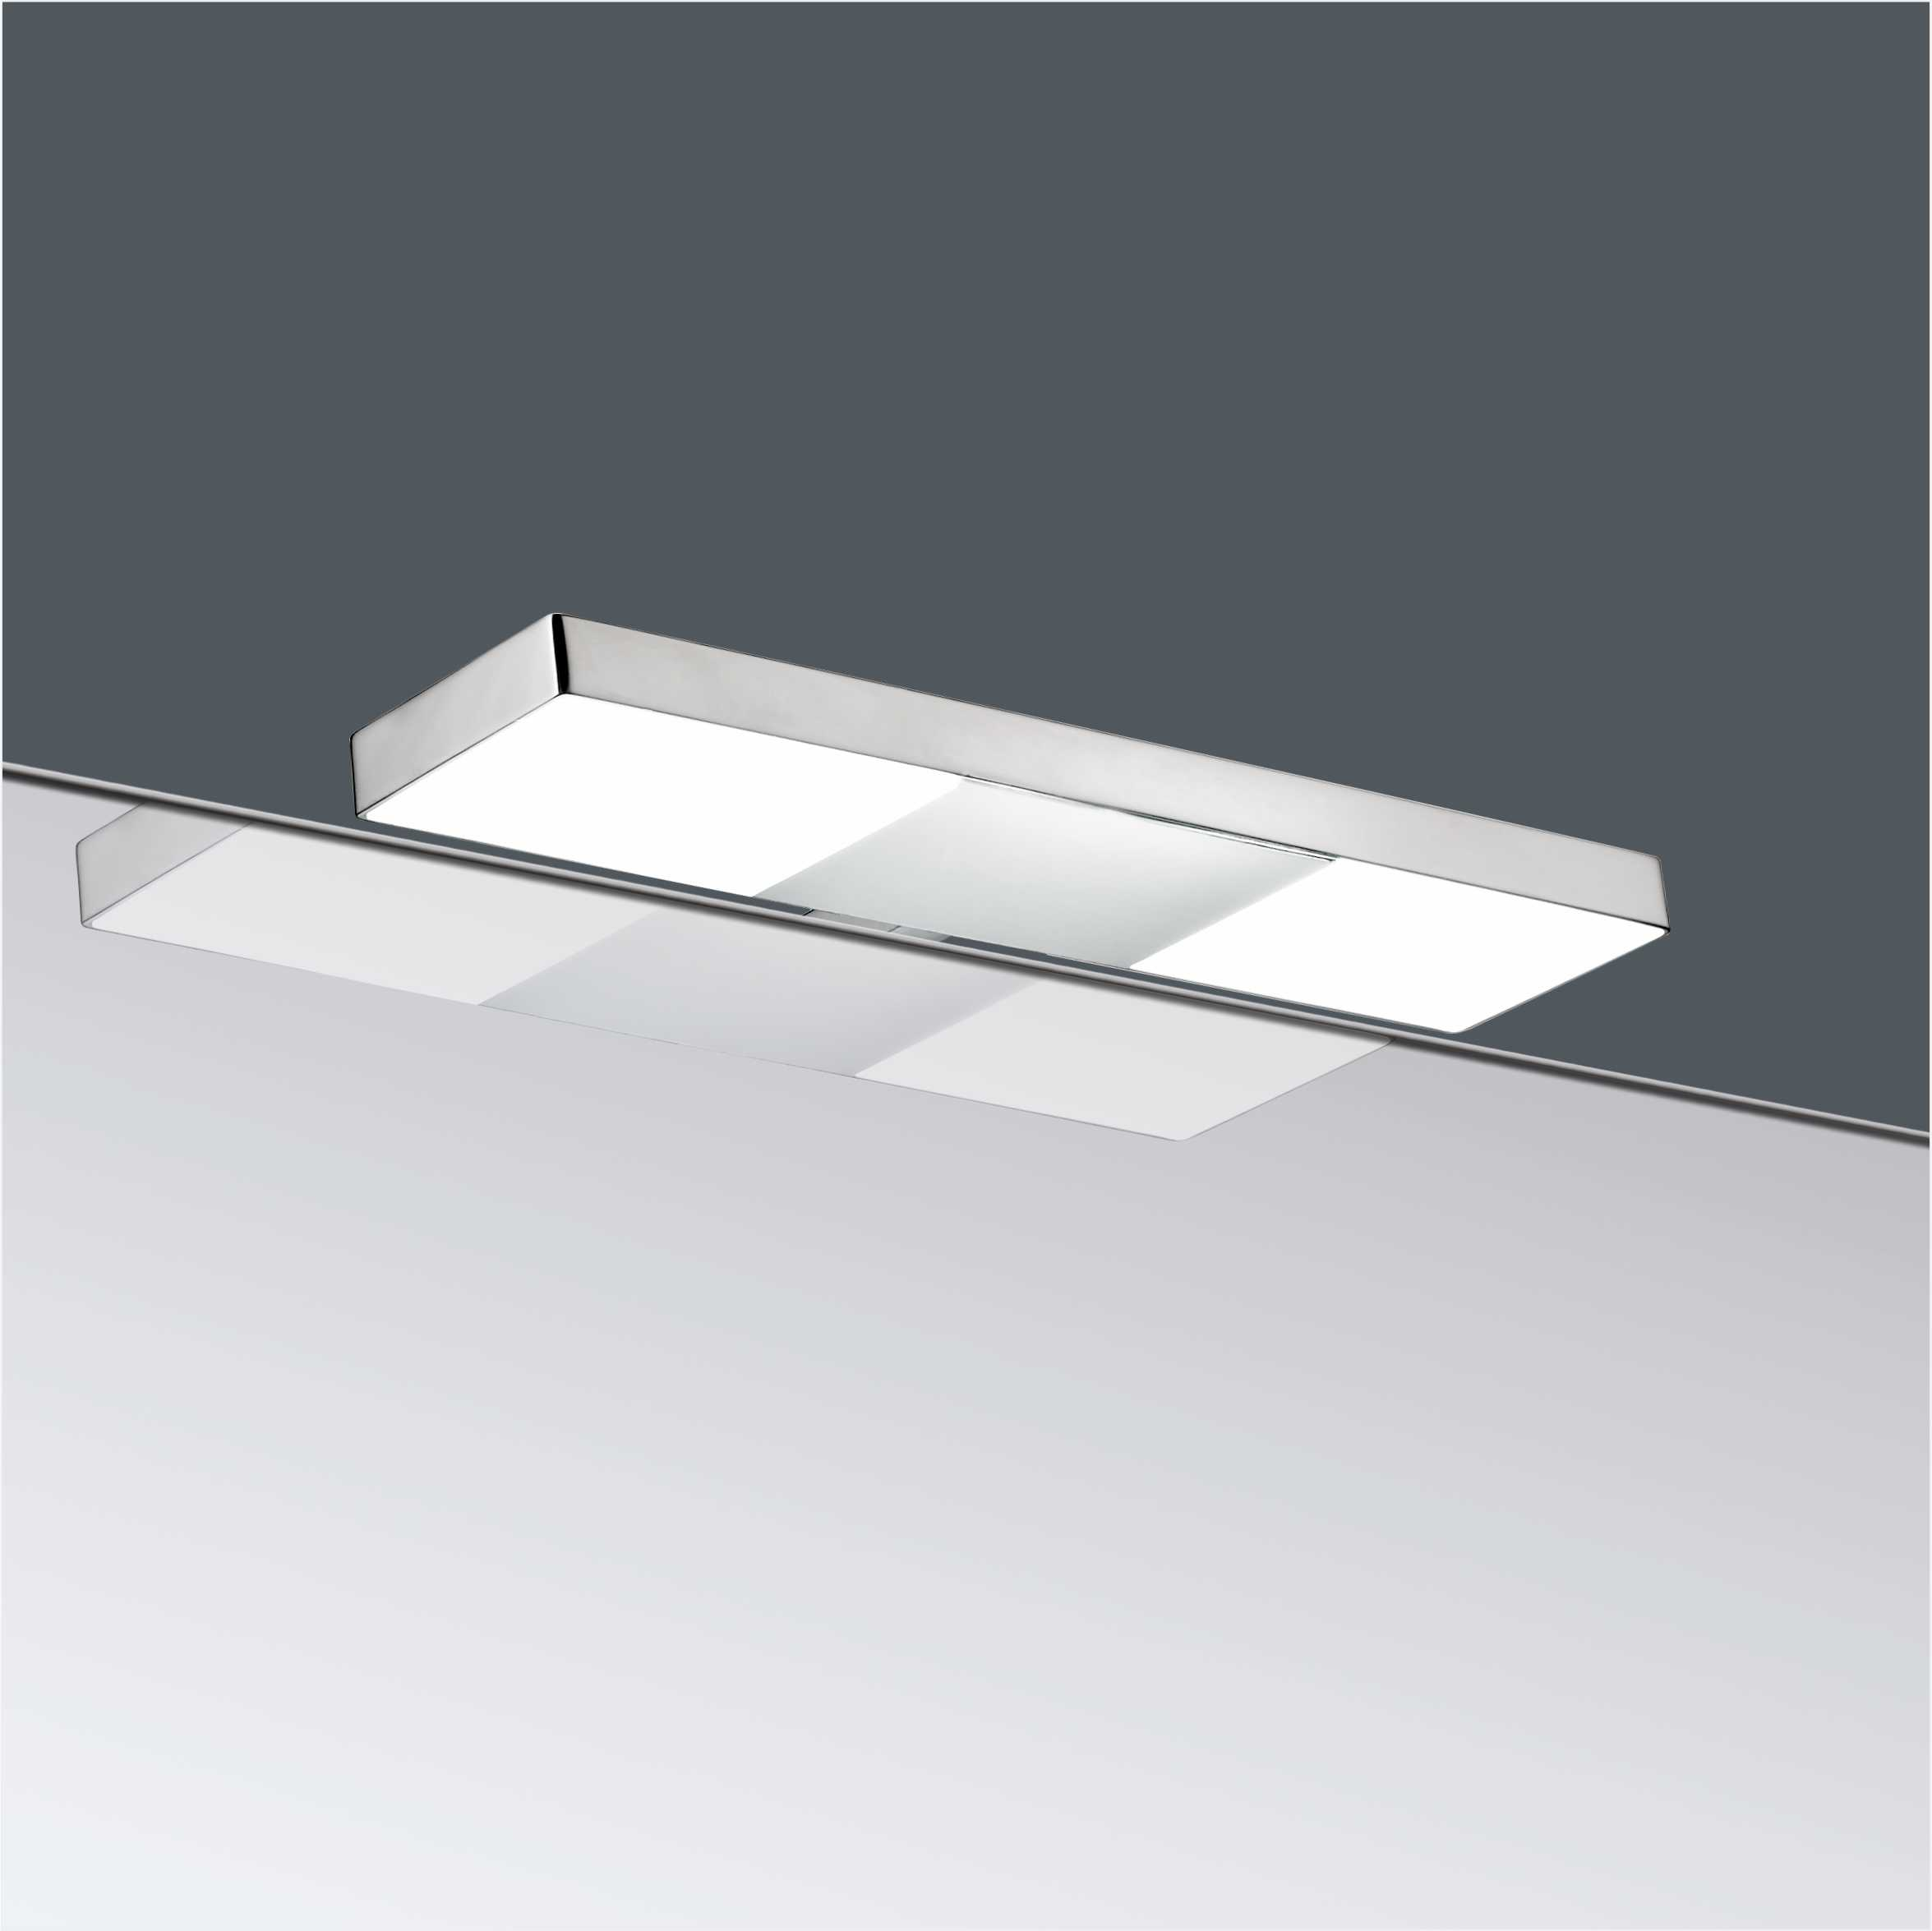 IP44 High Voltage 230V LED Bathroom Mirror Light 2978